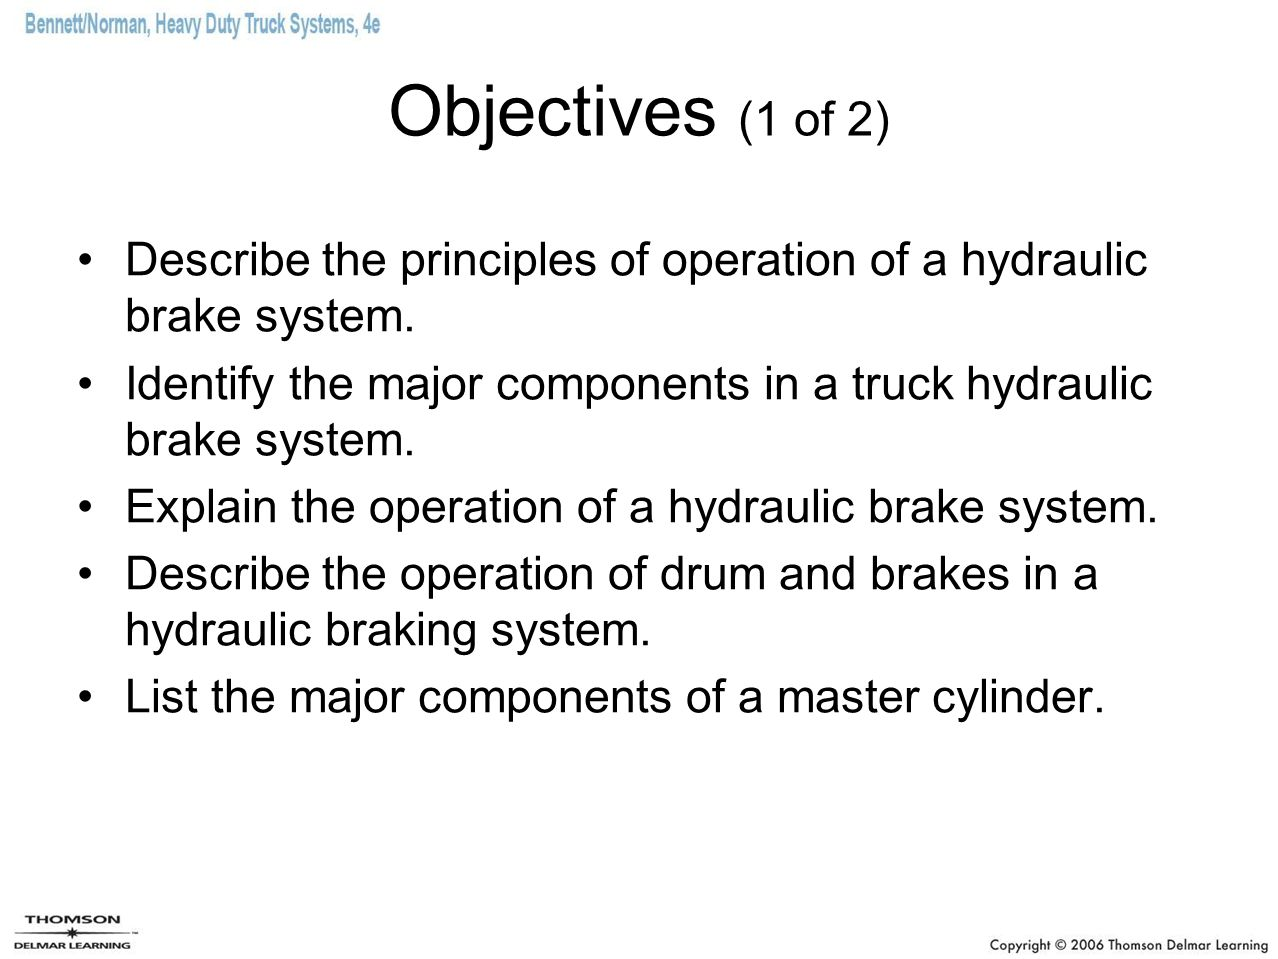 Objectives (1 of 2) Describe the principles of operation of a hydraulic brake system. Identify the major components in a truck hydraulic brake system.